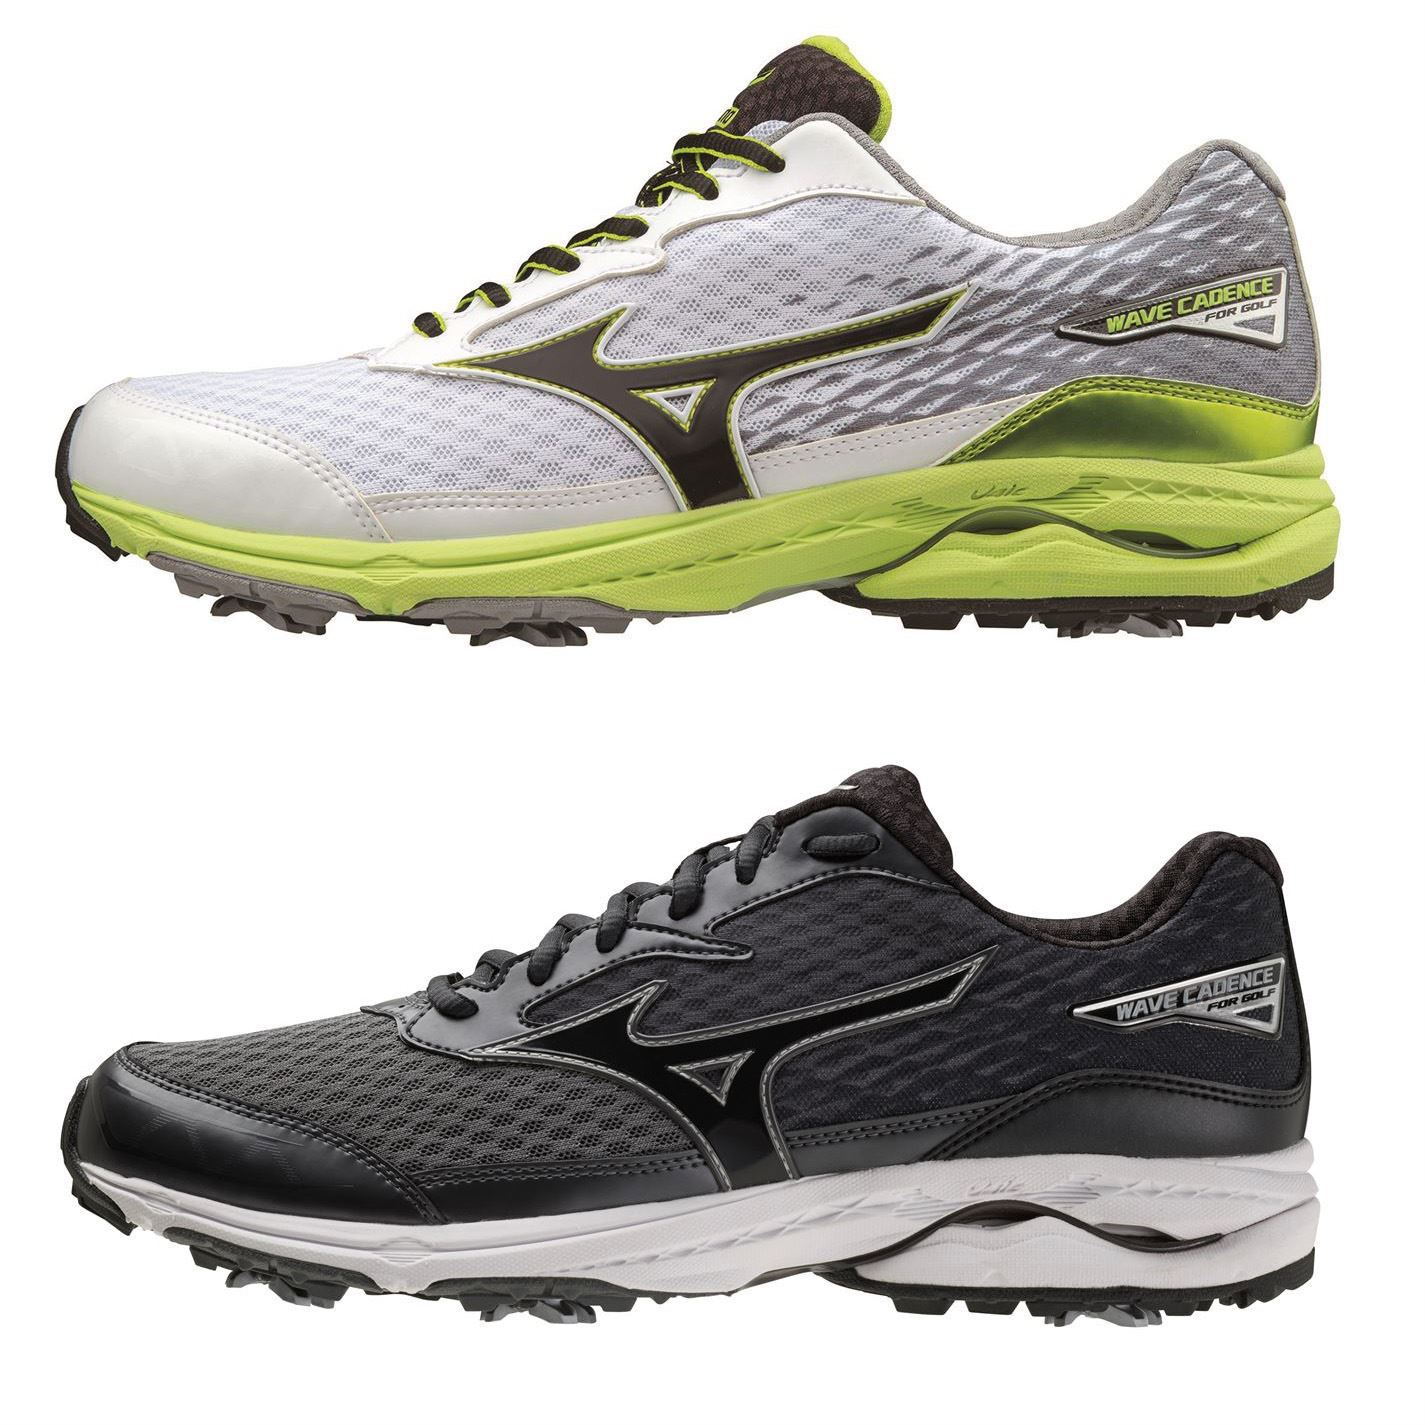 mizuno wave cadence golf shoes